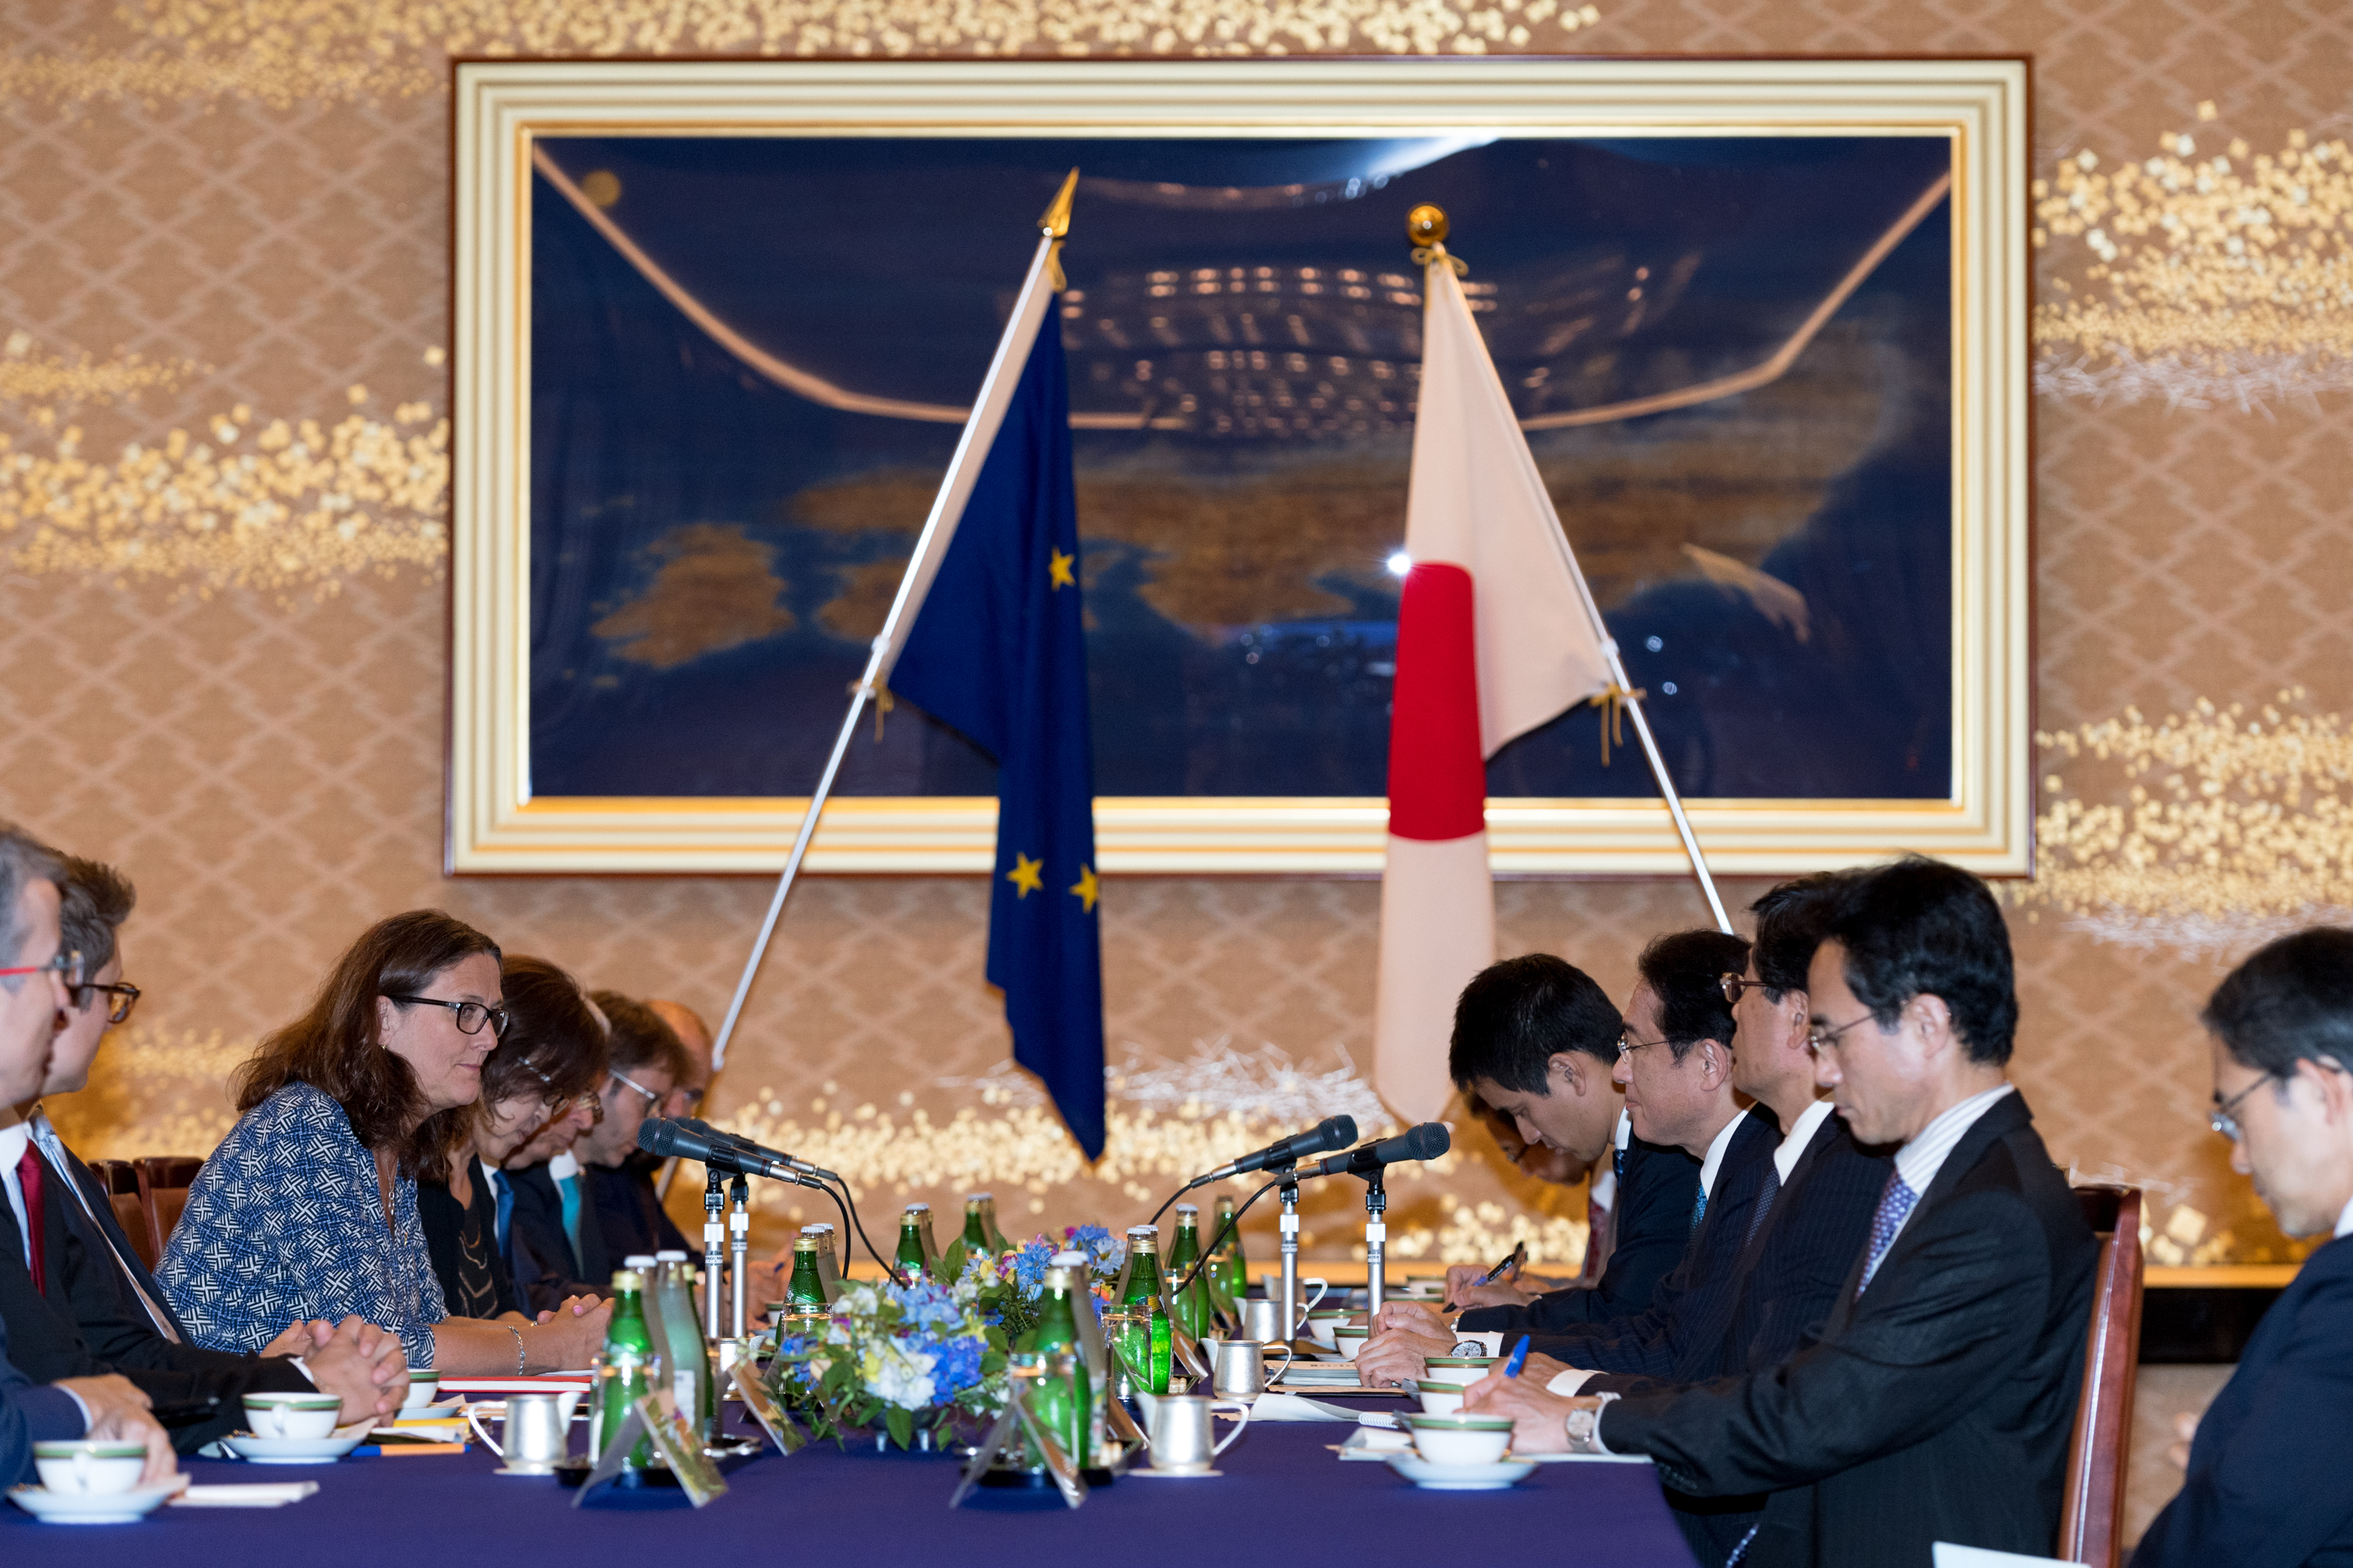 The Ashi Shimbun: Japan, EU said near agreement on trade pact